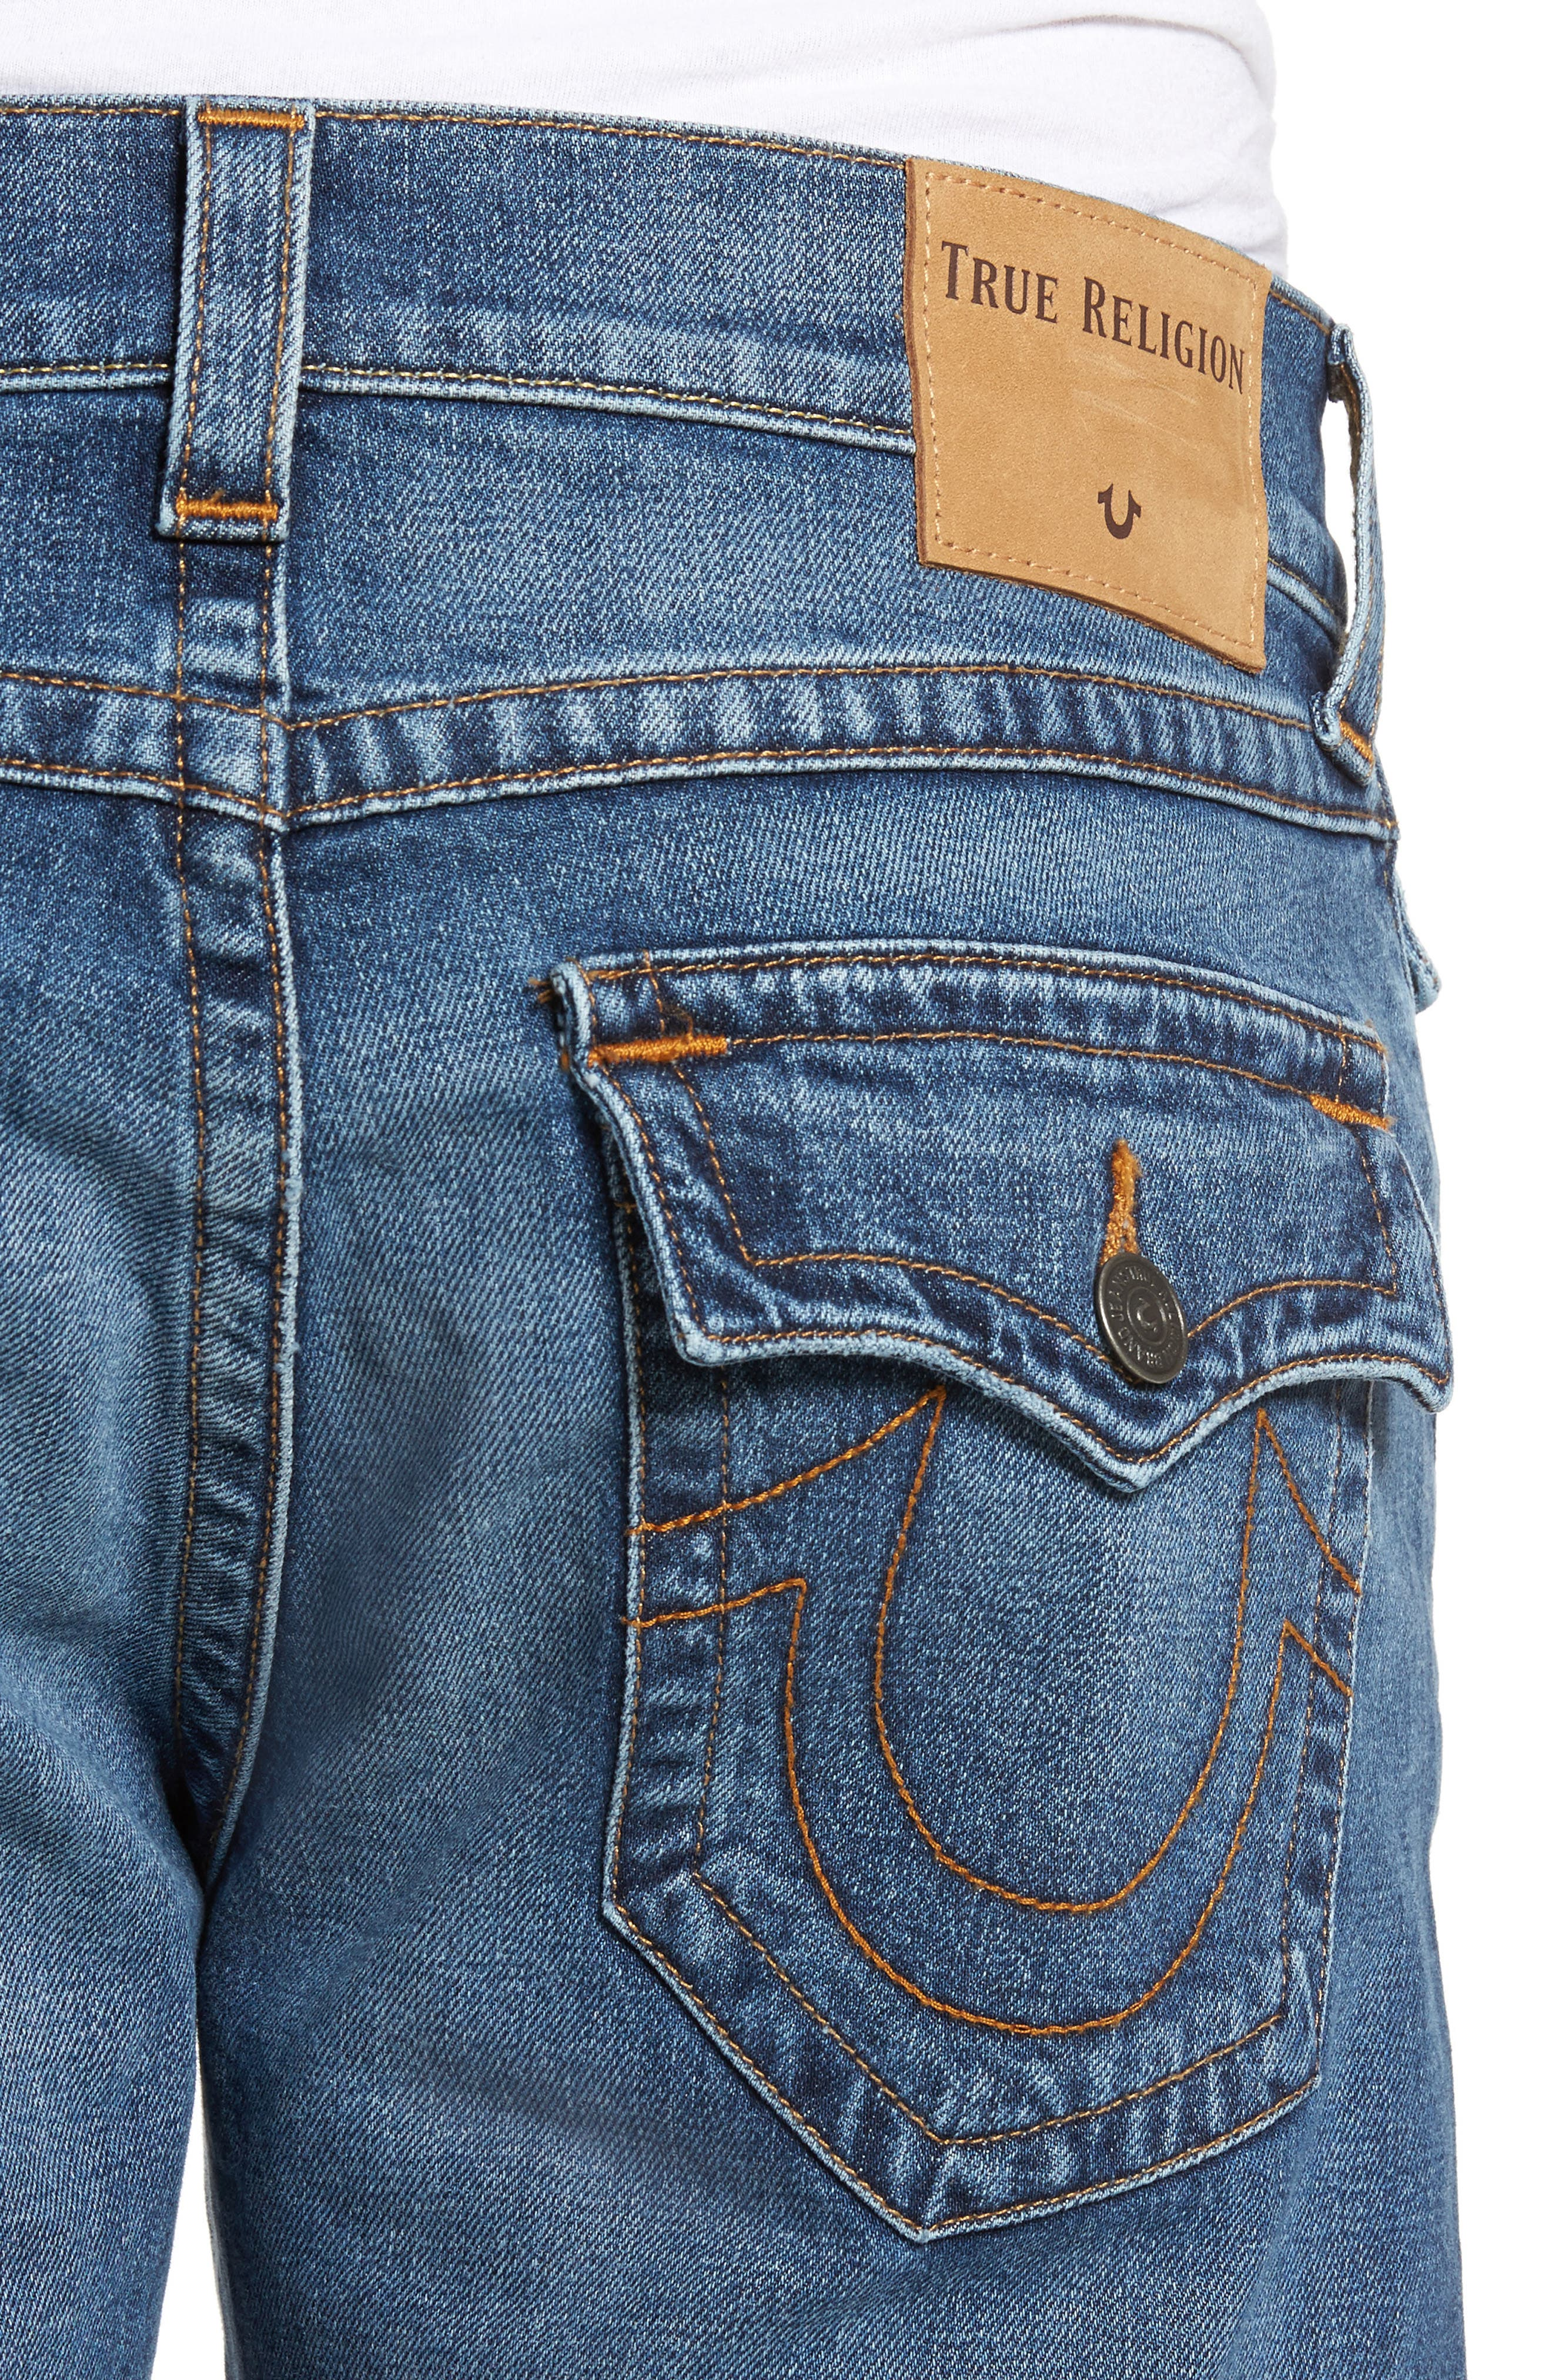 Ricky Relaxed Fit Jeans,                             Alternate thumbnail 4, color,                             Indigo Traveler